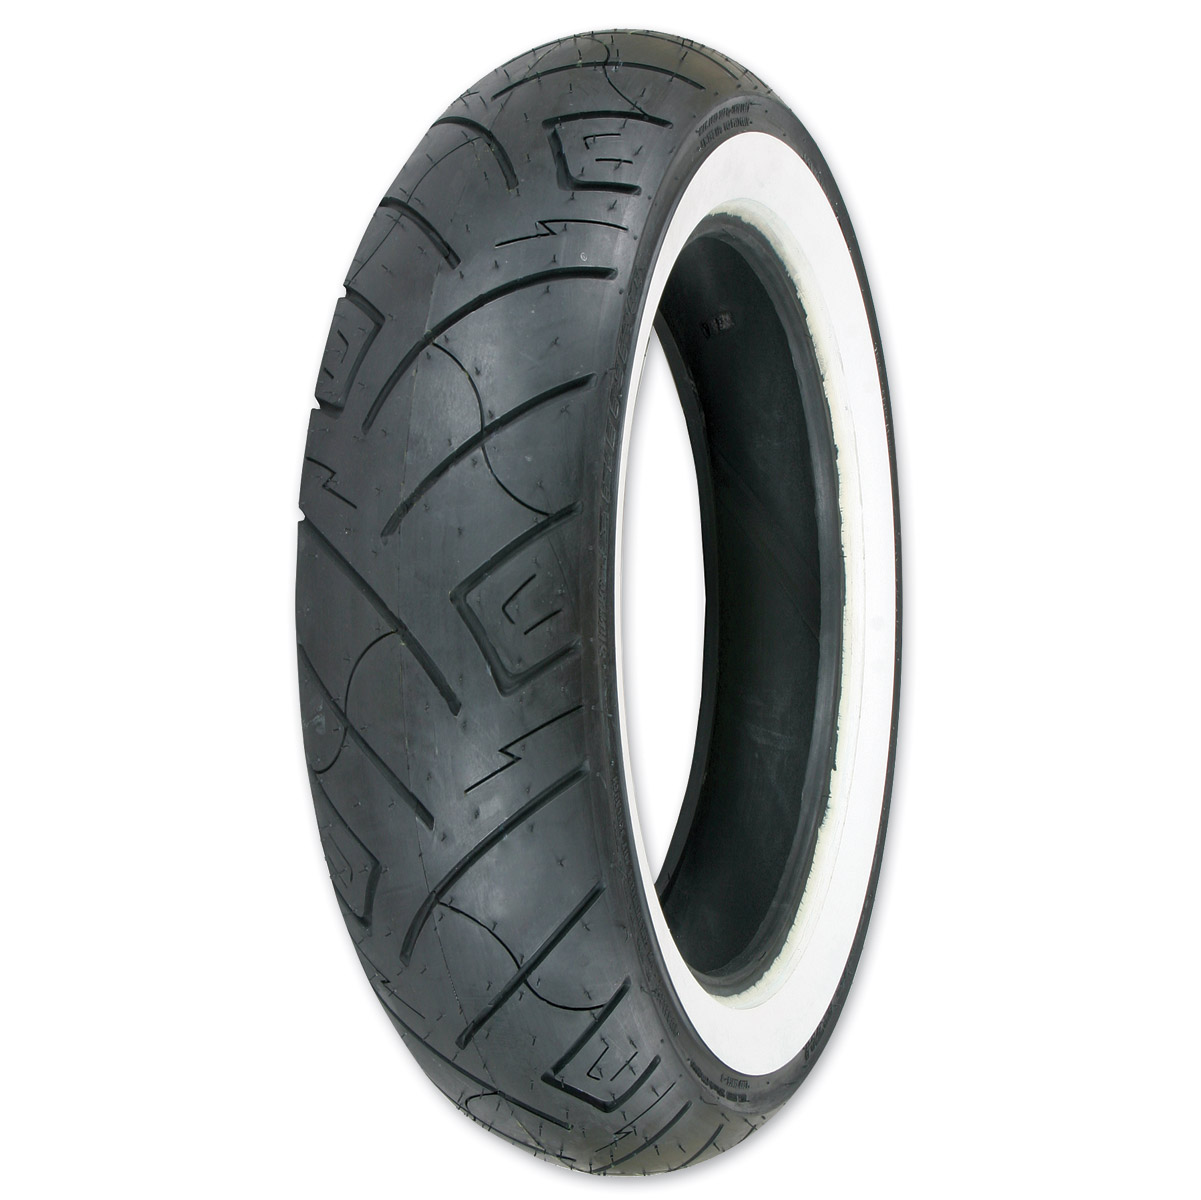 Shinko 777 HD 150/90-15 Wide Whitewall Rear Tire